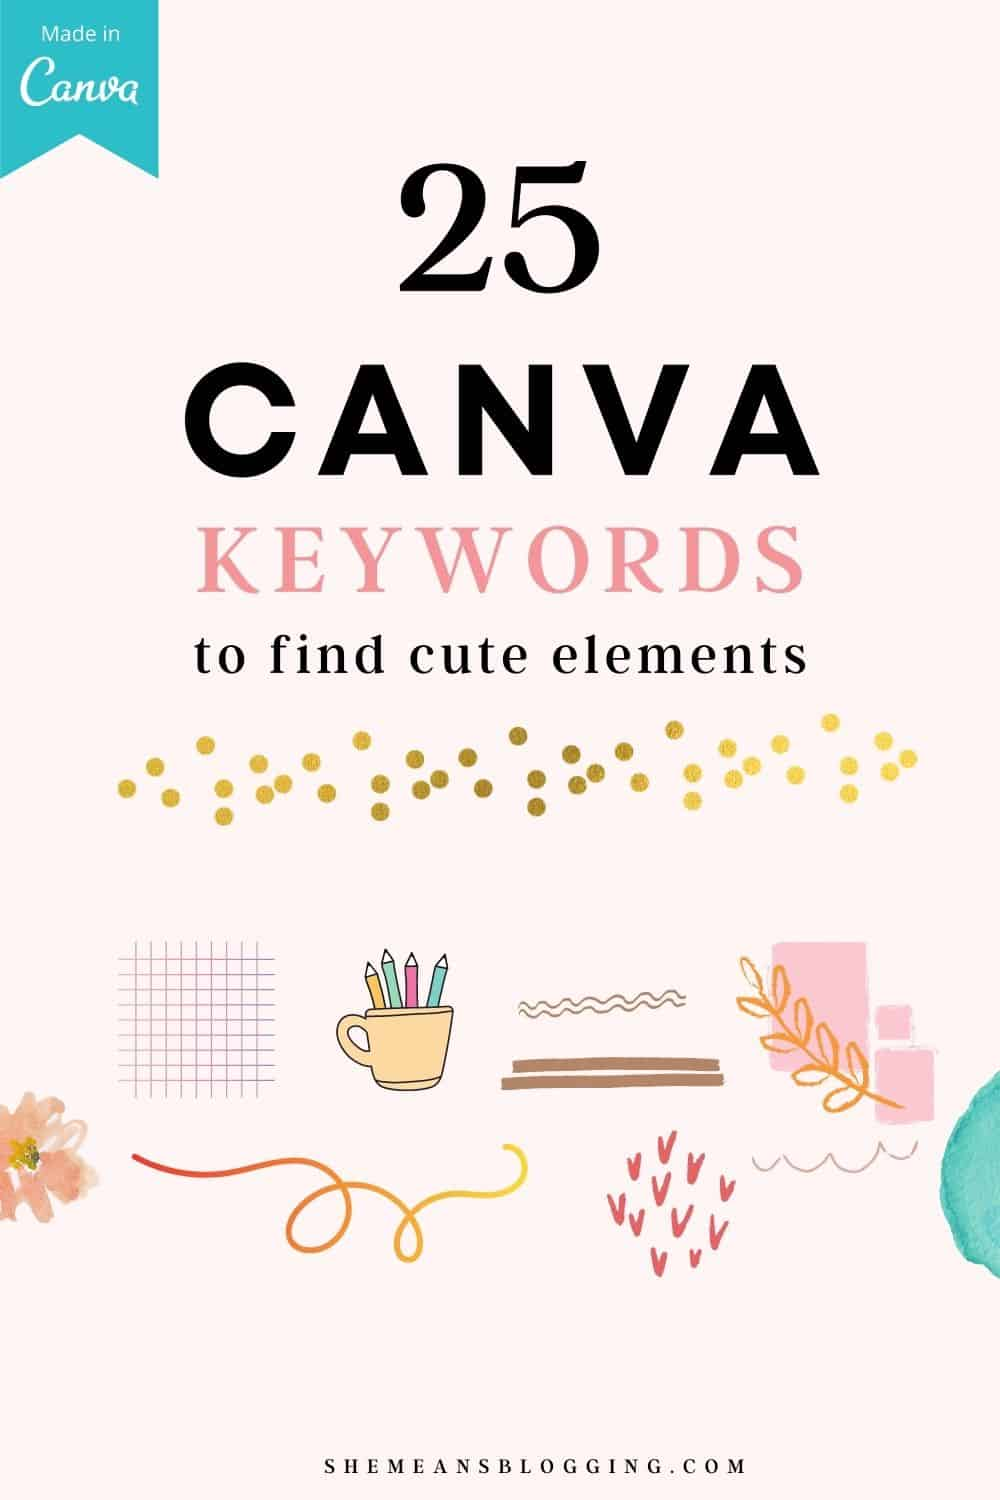 Type these canva keywords for creative elements. What keywords to type in Canva for finding elements? Here are 25 hidden secret keywords for canva elements ideas. Click to use these elements for Canva. Aesthetic keywords for canva. Artistic keywords for canva. Canva tips and tricks.